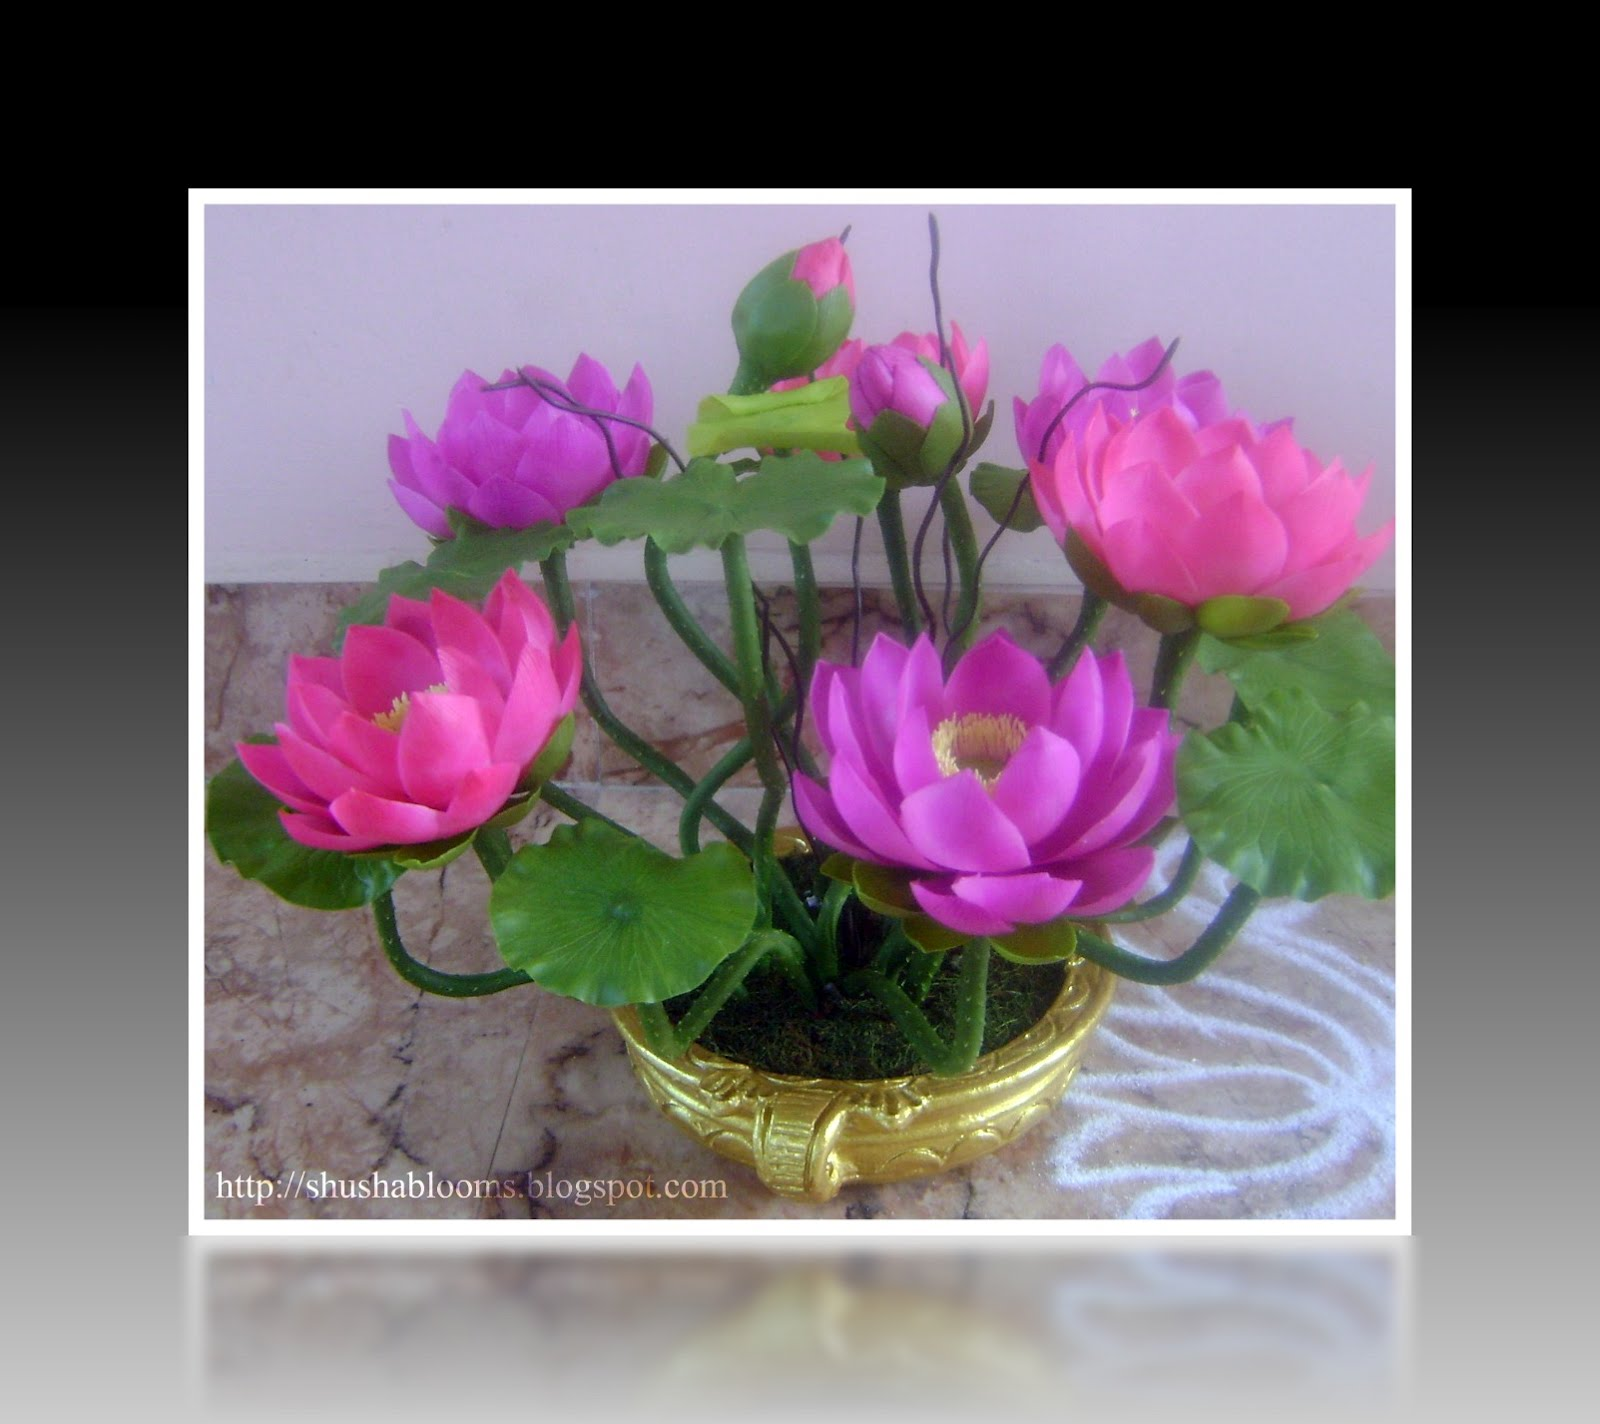 Everfresh Blossoms New Lotus Arrangements With Thai Clay